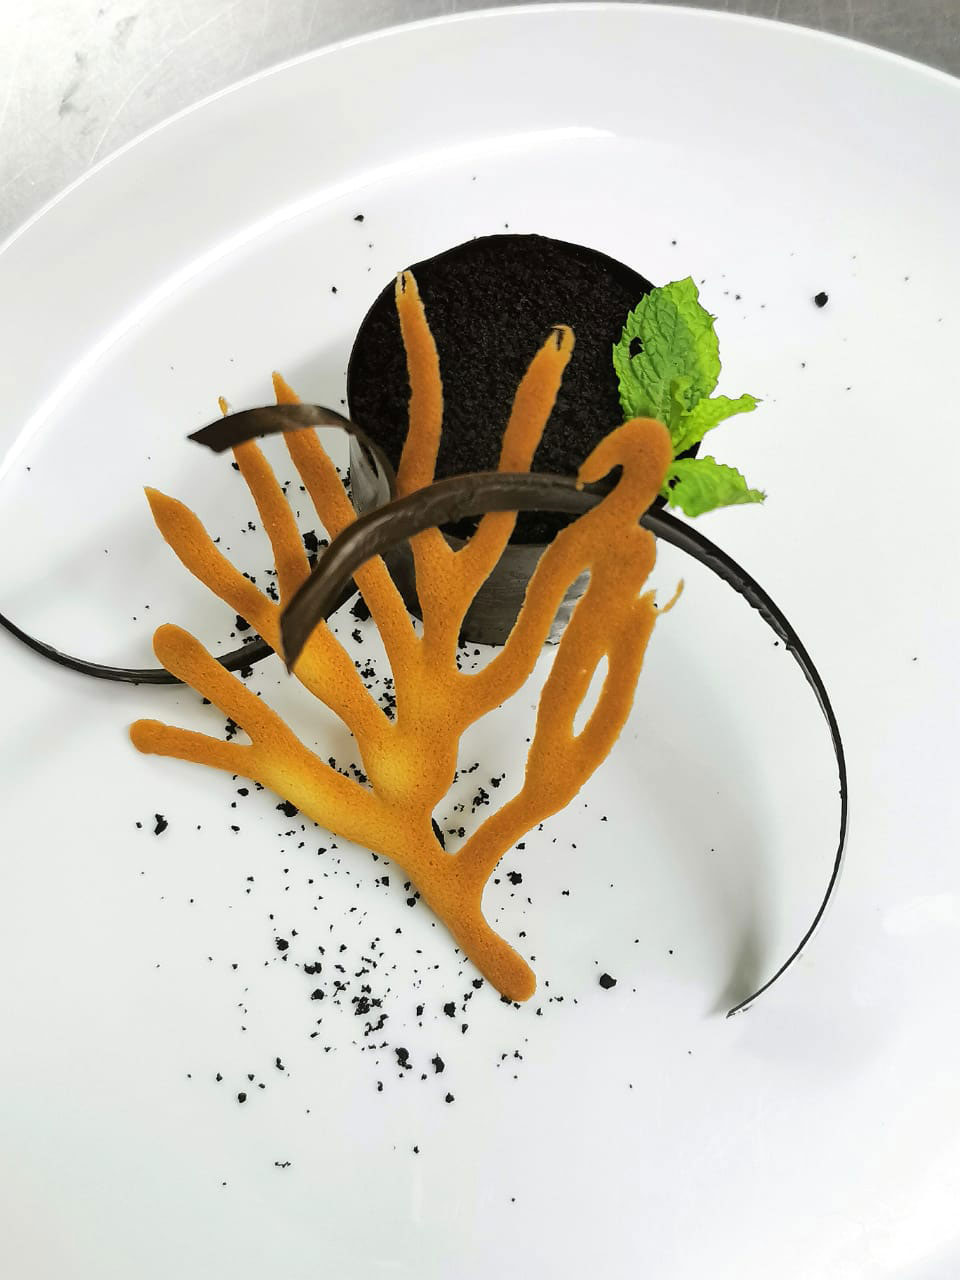 Tanda Tula - a gorgeous dessert on safari in the Greater Kruger